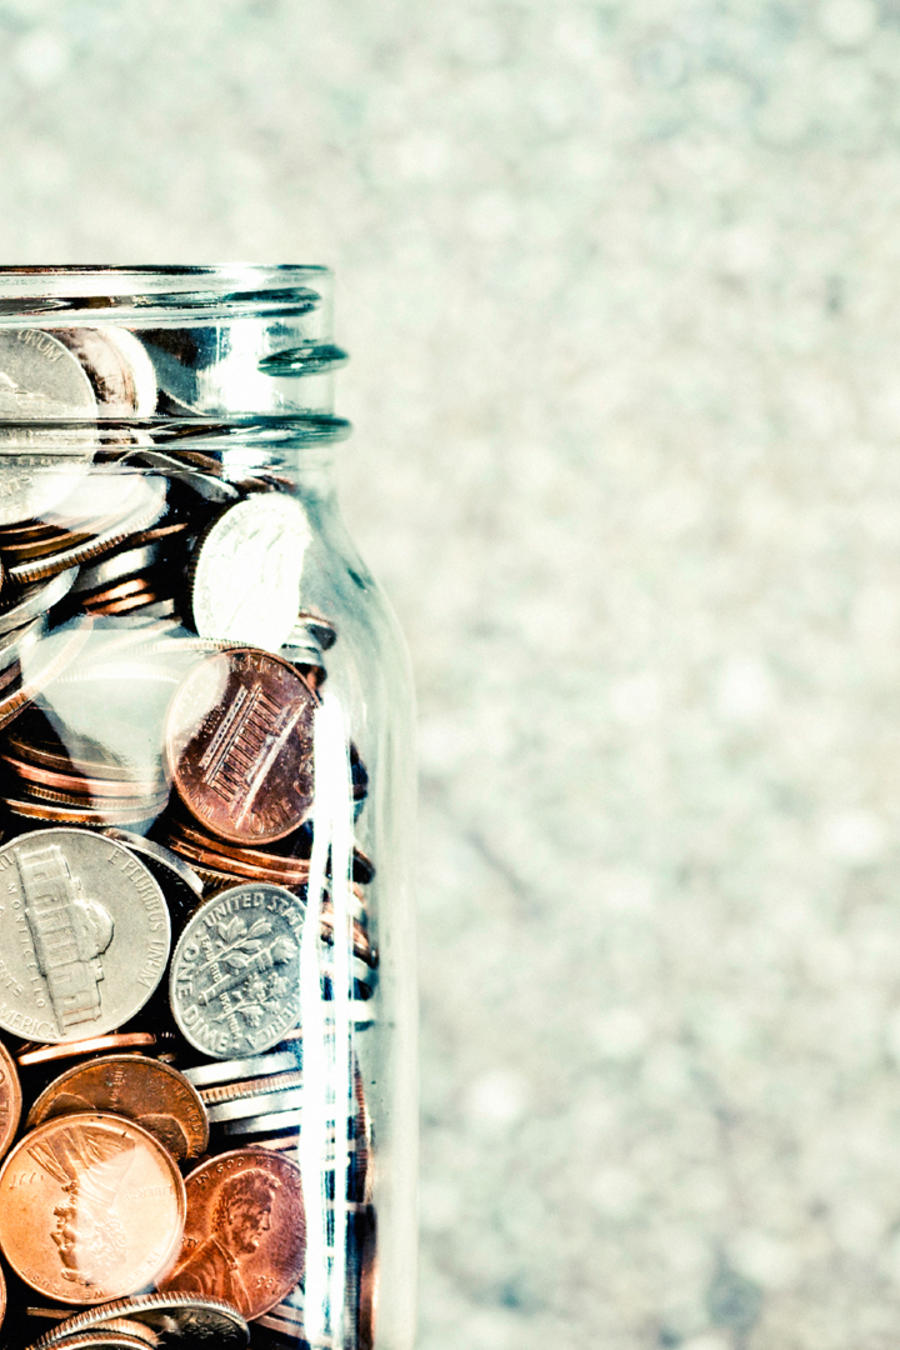 Save your change at the end of the day